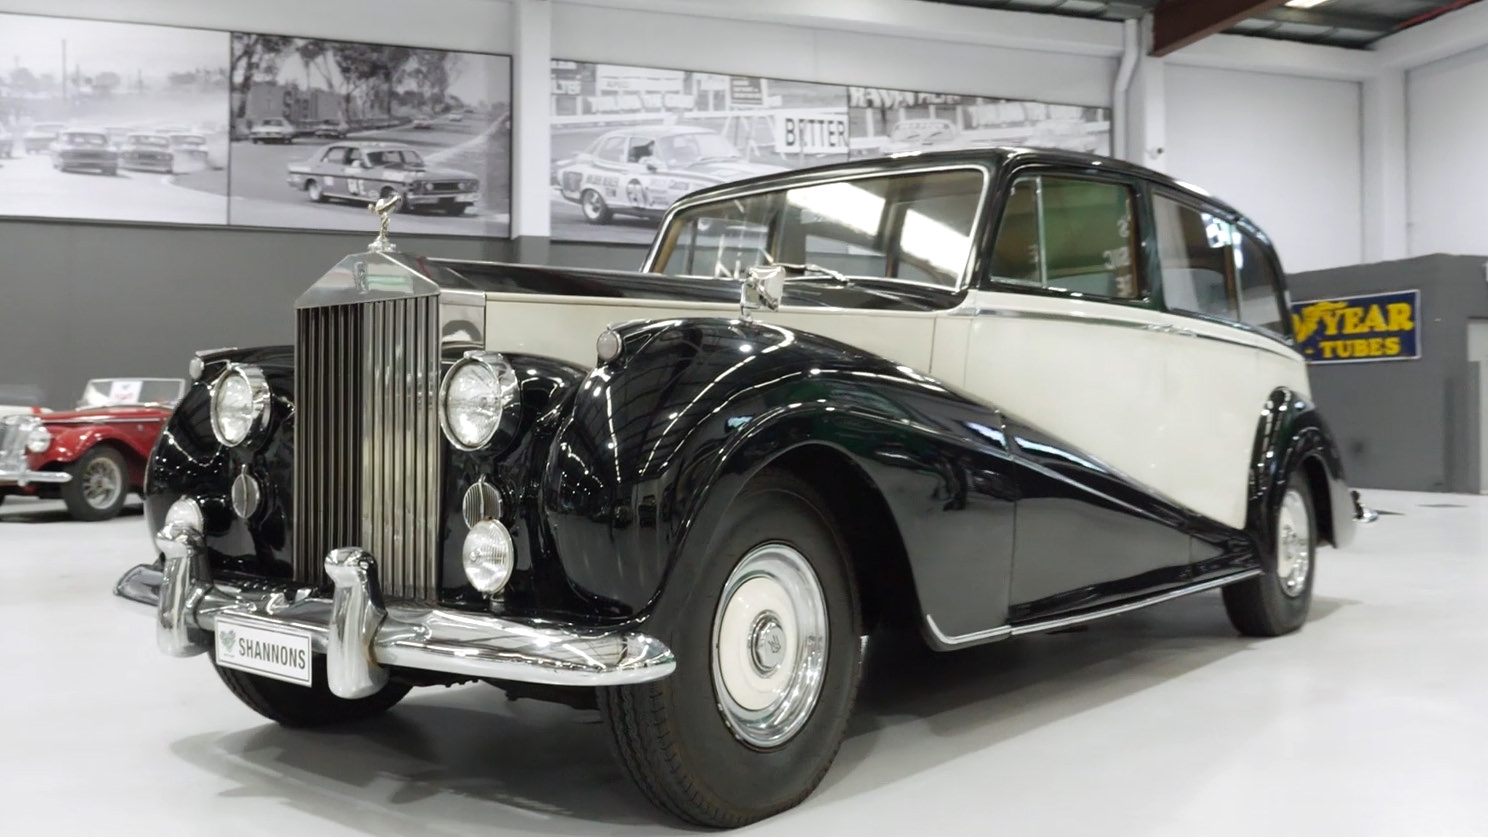 1957 Rolls-Royce Silver Wraith 'Park Ward' Limousine - 2021 Shannons Spring Timed Online Auction